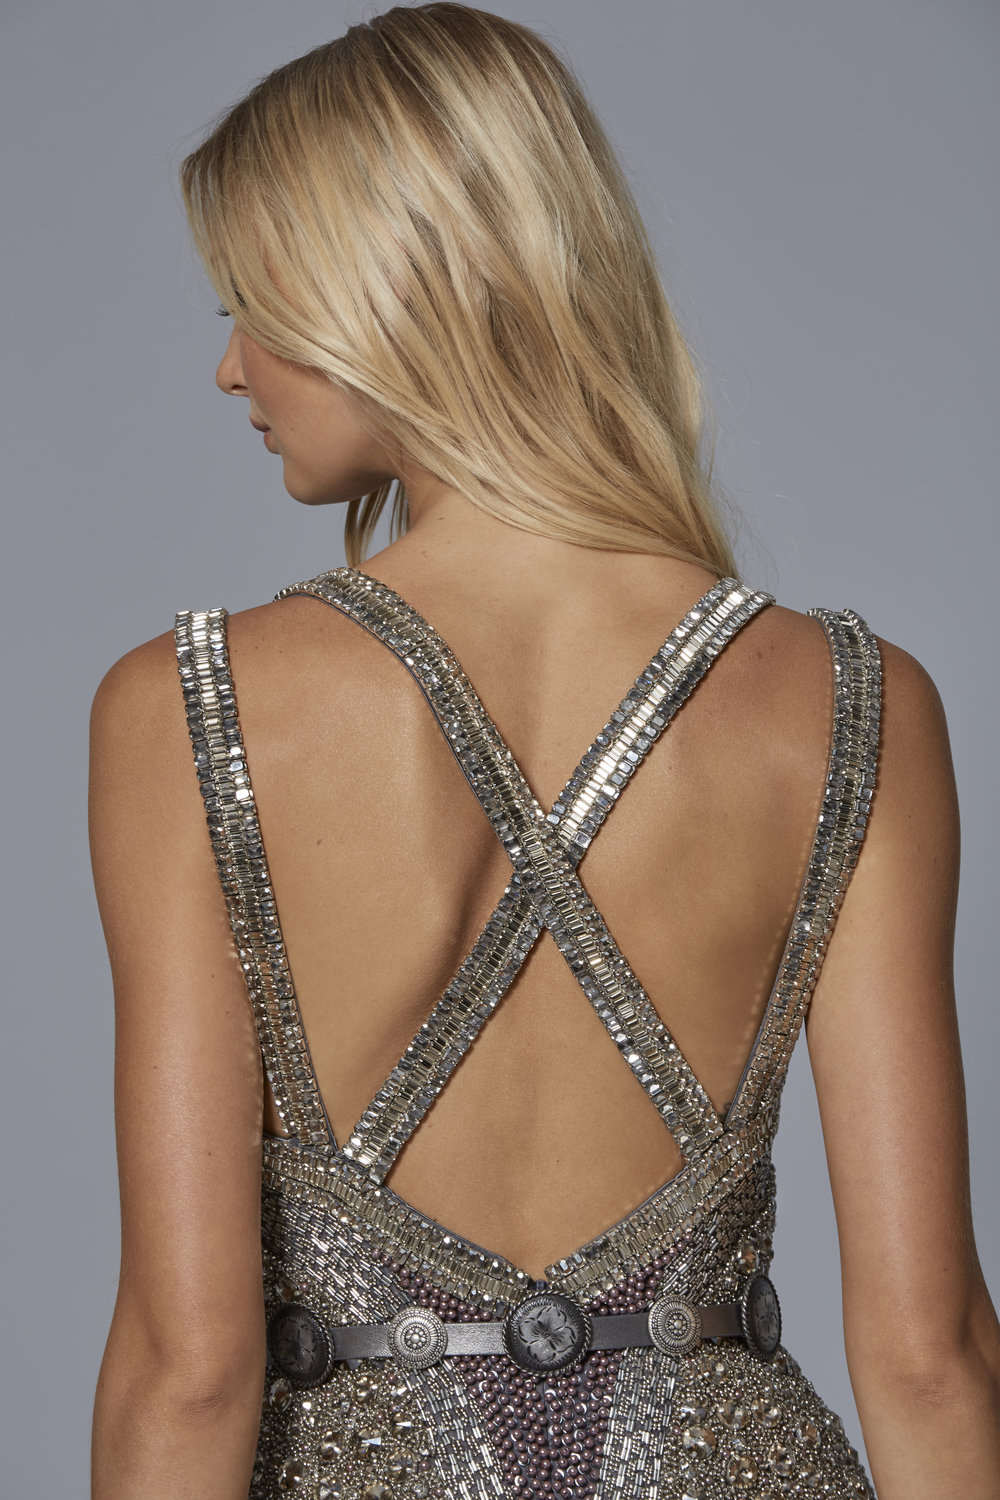 CLAUDIO CINA   LOOK 1: BACK VIEW  Embroidered Tulle Dress in Gunmetal Crystal Stones & Pearls With Leather Medallion Belt